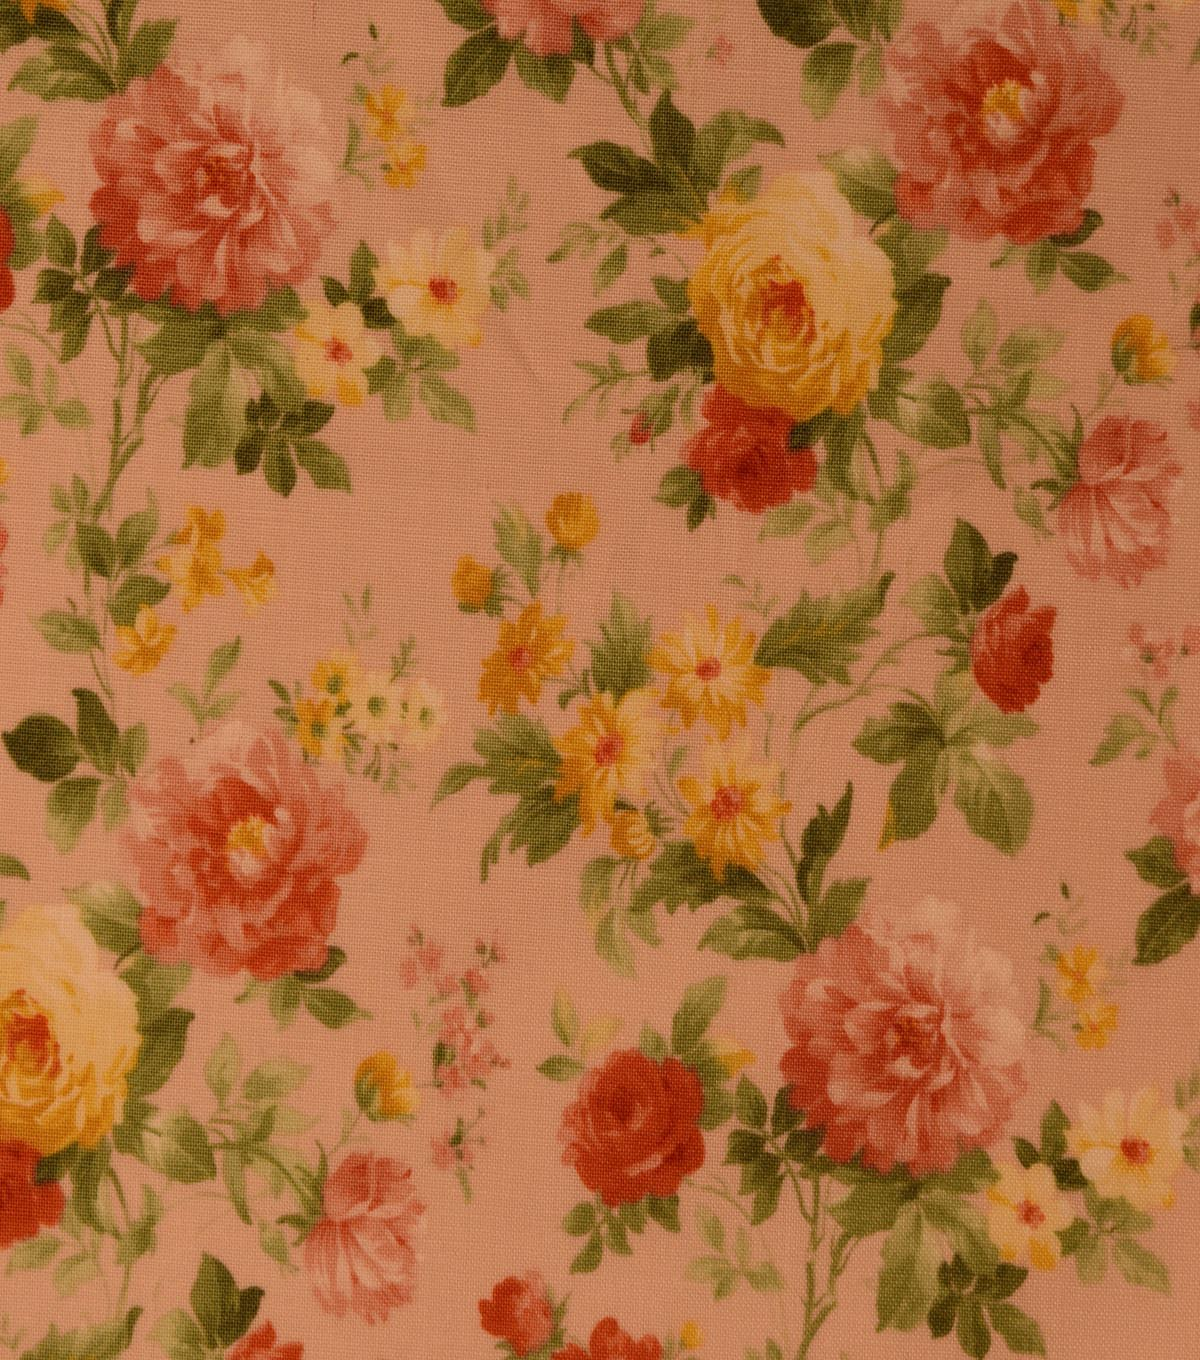 Vintage Premium Cotton Fabric -Tossed Garden on Coral